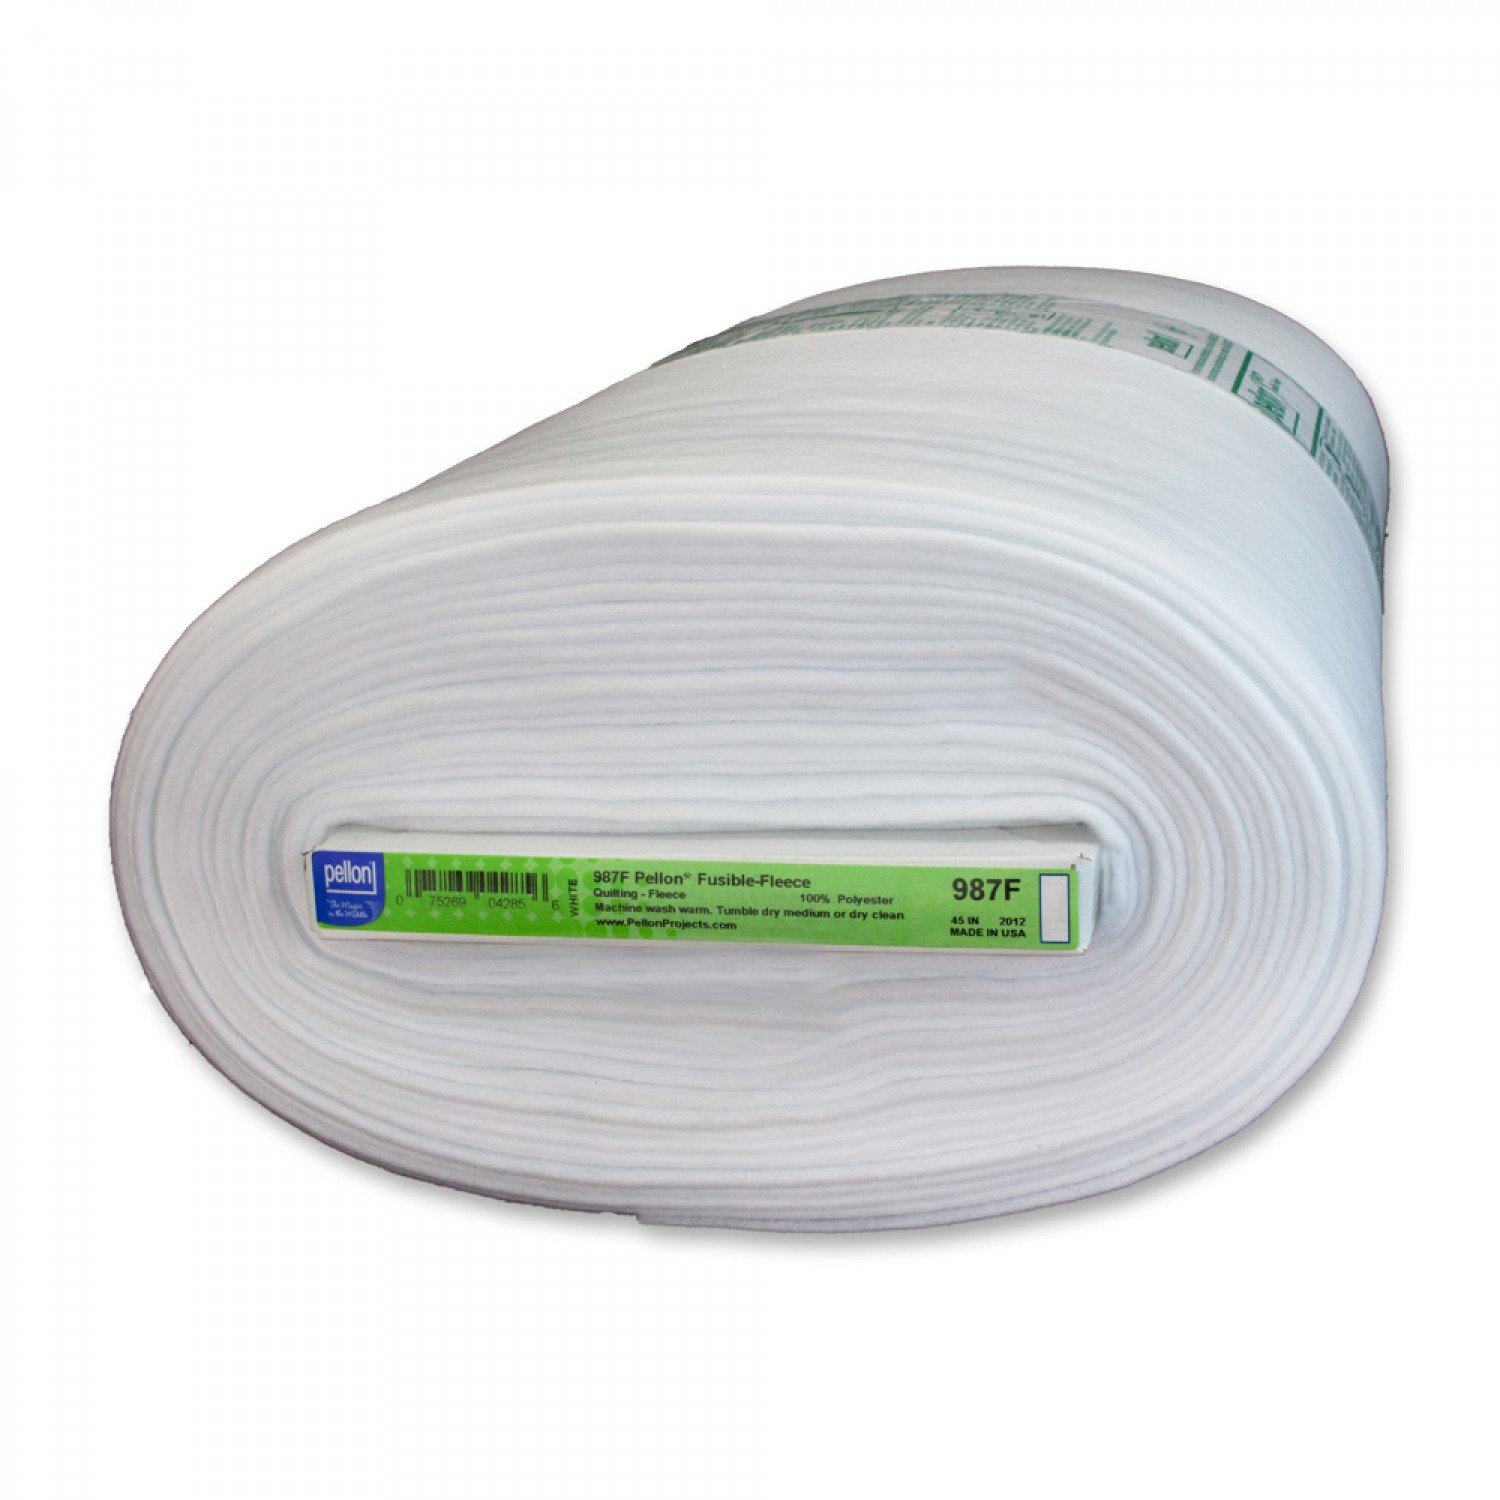 Fusible Fleece Pellon 44in wide